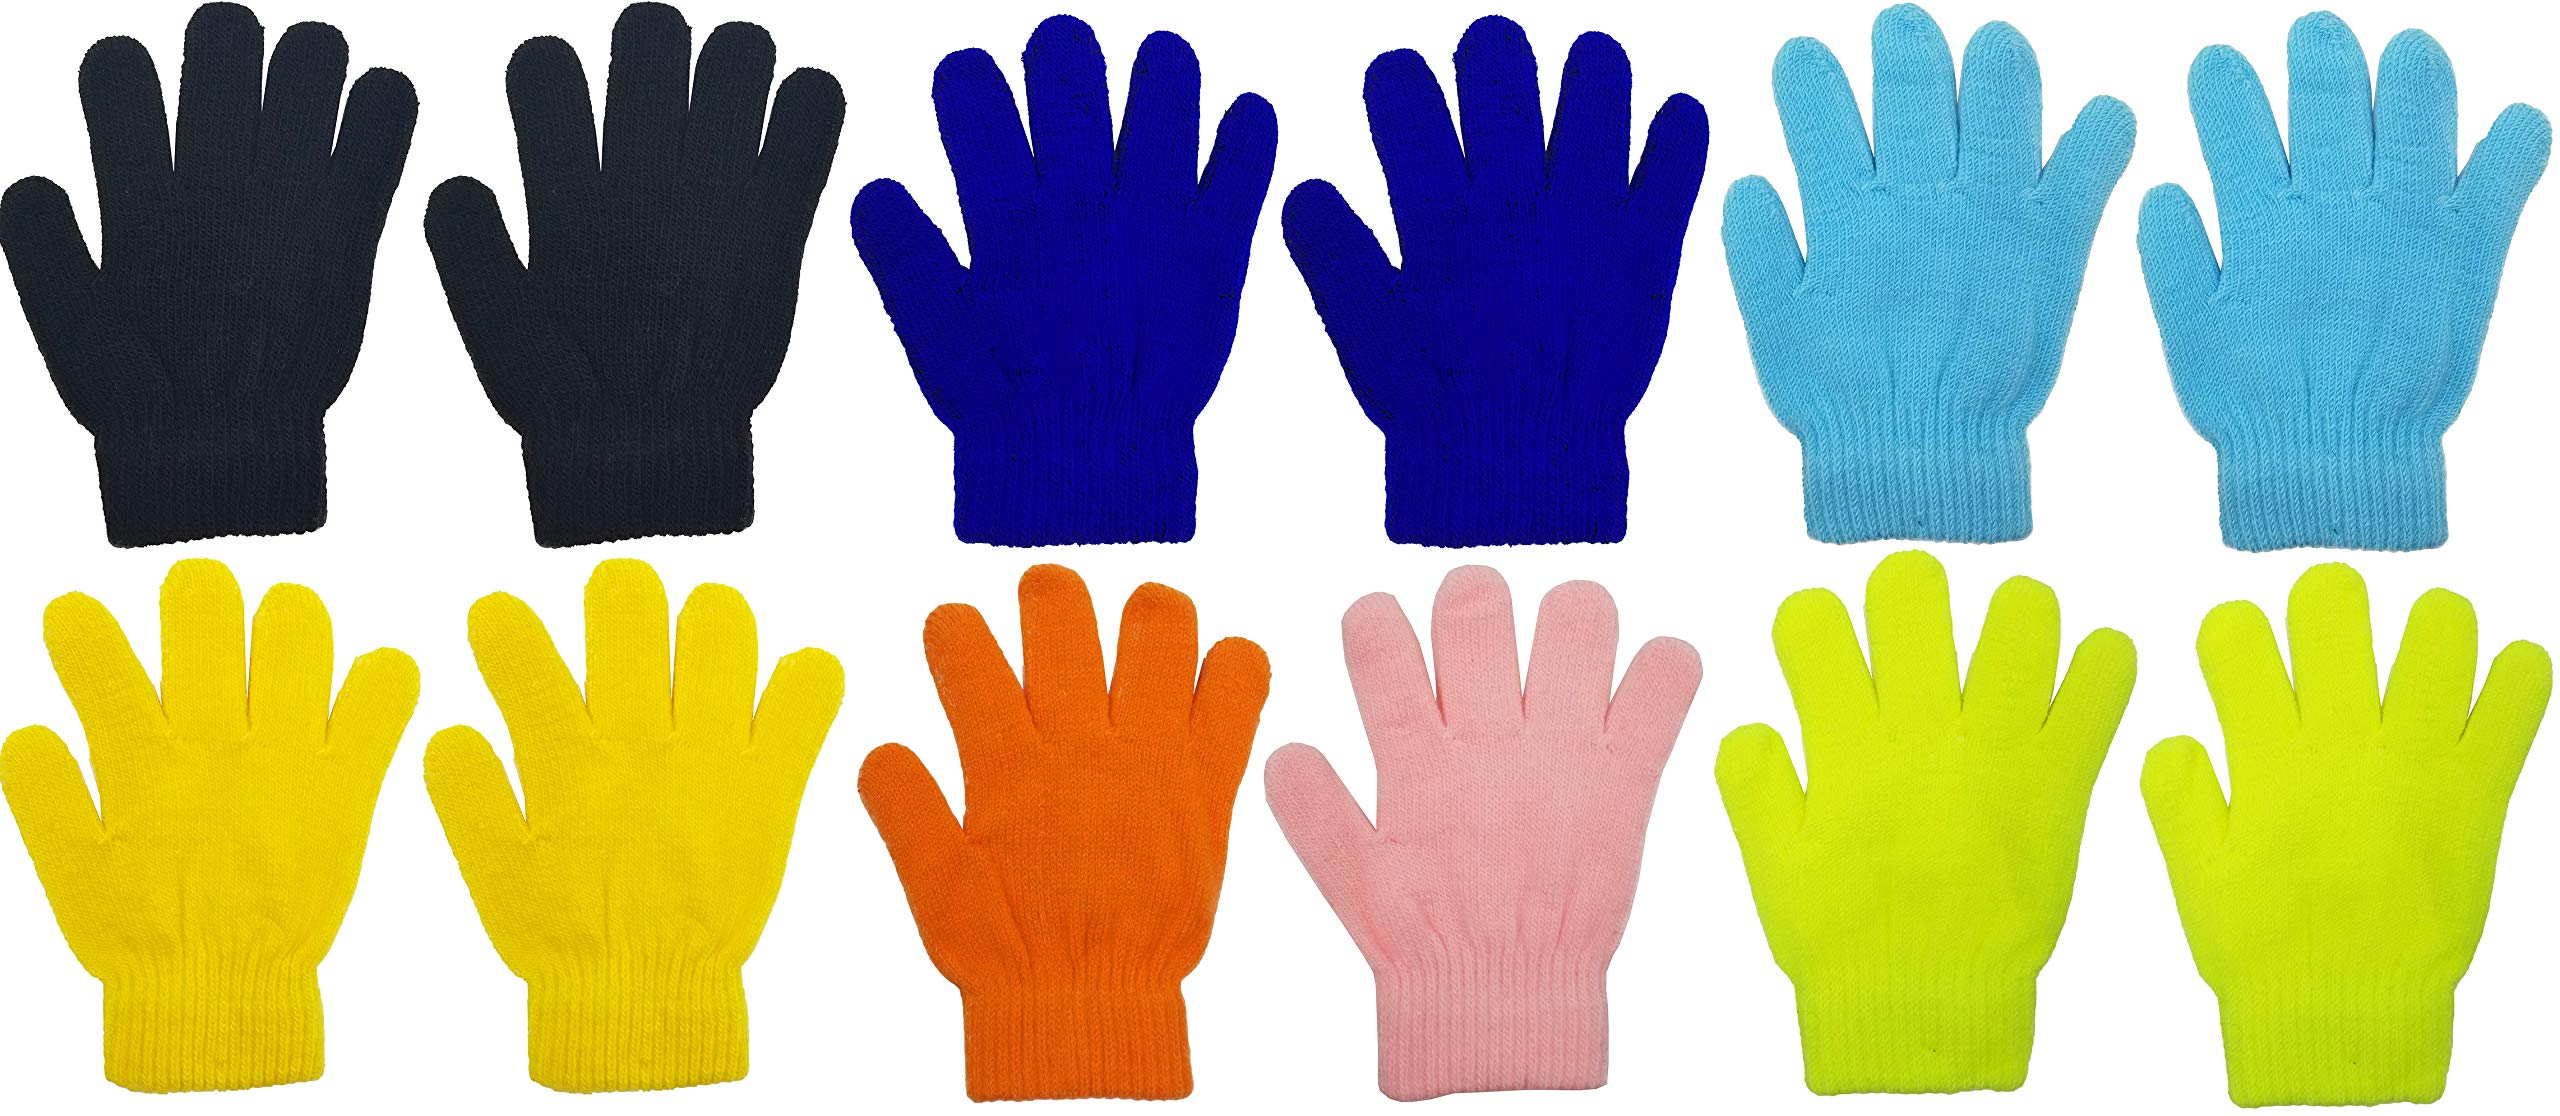 12 Pairs Winter Magic Gloves for Kids, Stretchy Warm Bulk Pack Boys Girls Children (12 Pairs Assorted Solids D)